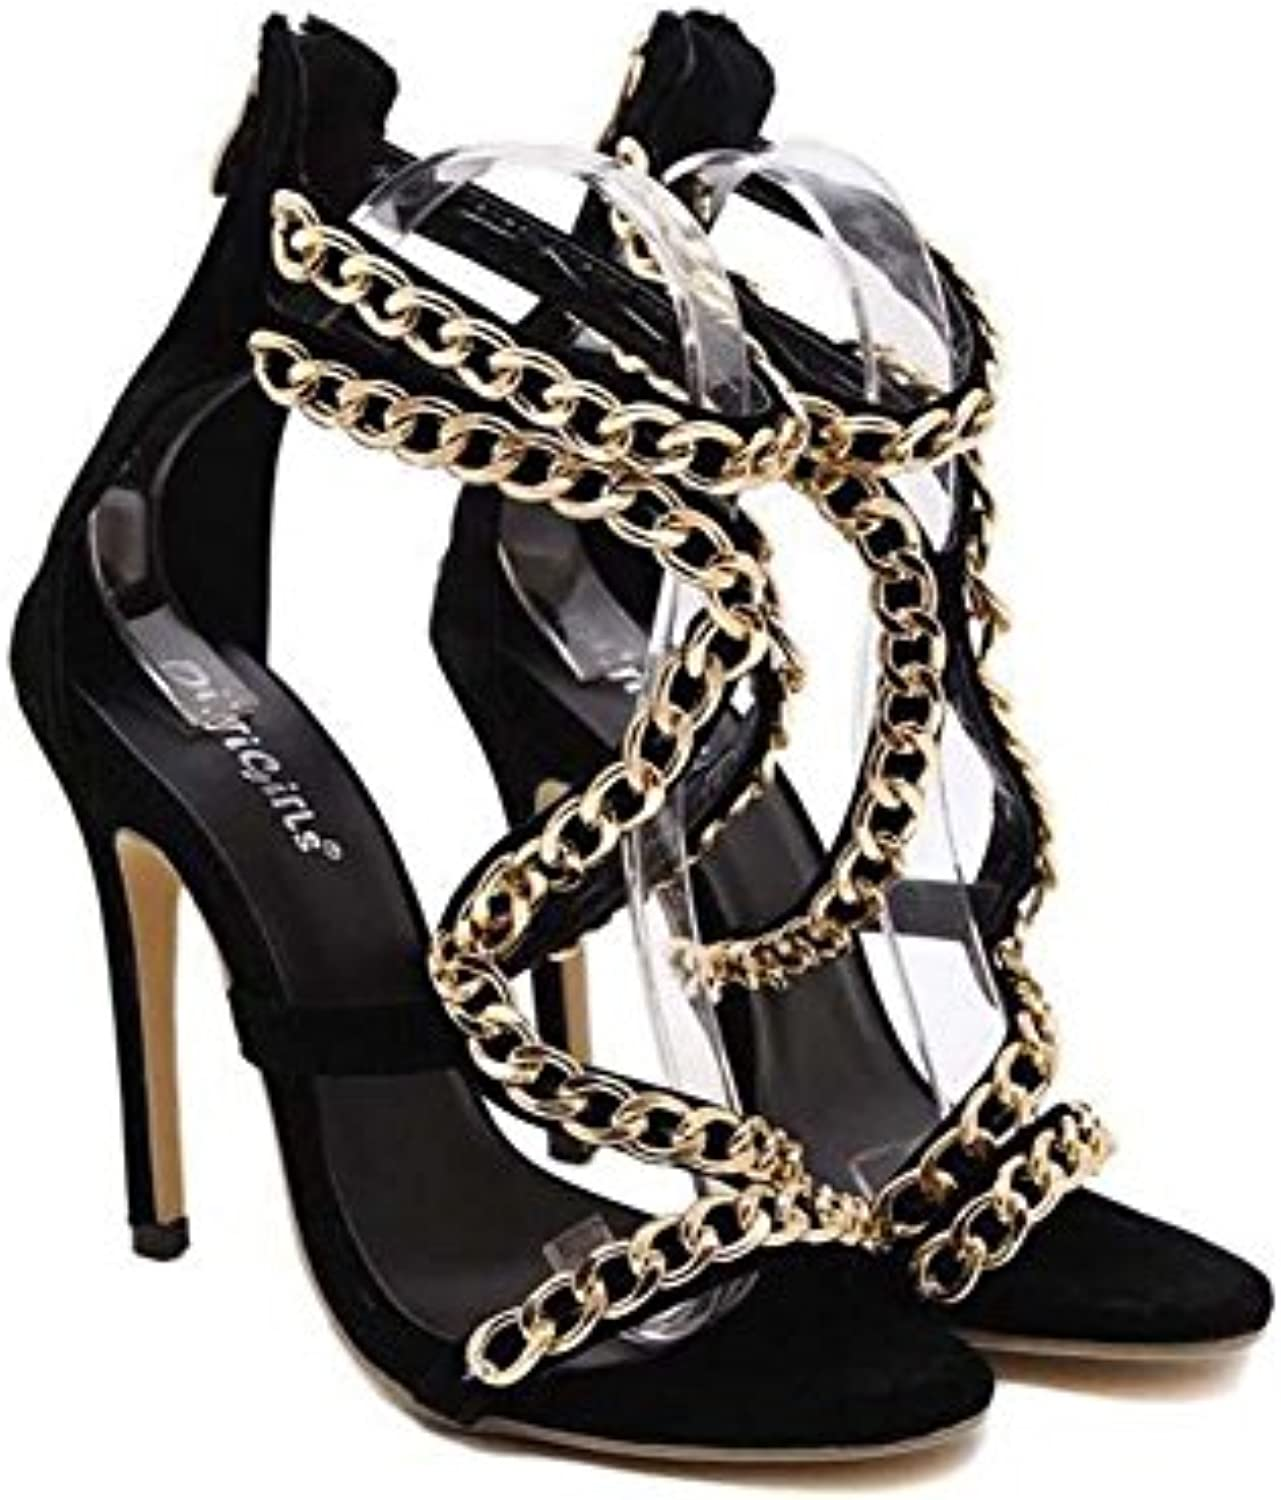 d92ae5939a24 Pump 12cm 12cm 12cm Stiletto Scarpin High-Heeled Hollow Metal Chain  Decoration Sandals Dress Shoes Court Shoes Women Simple... B071S6GX14  Parent 587c37